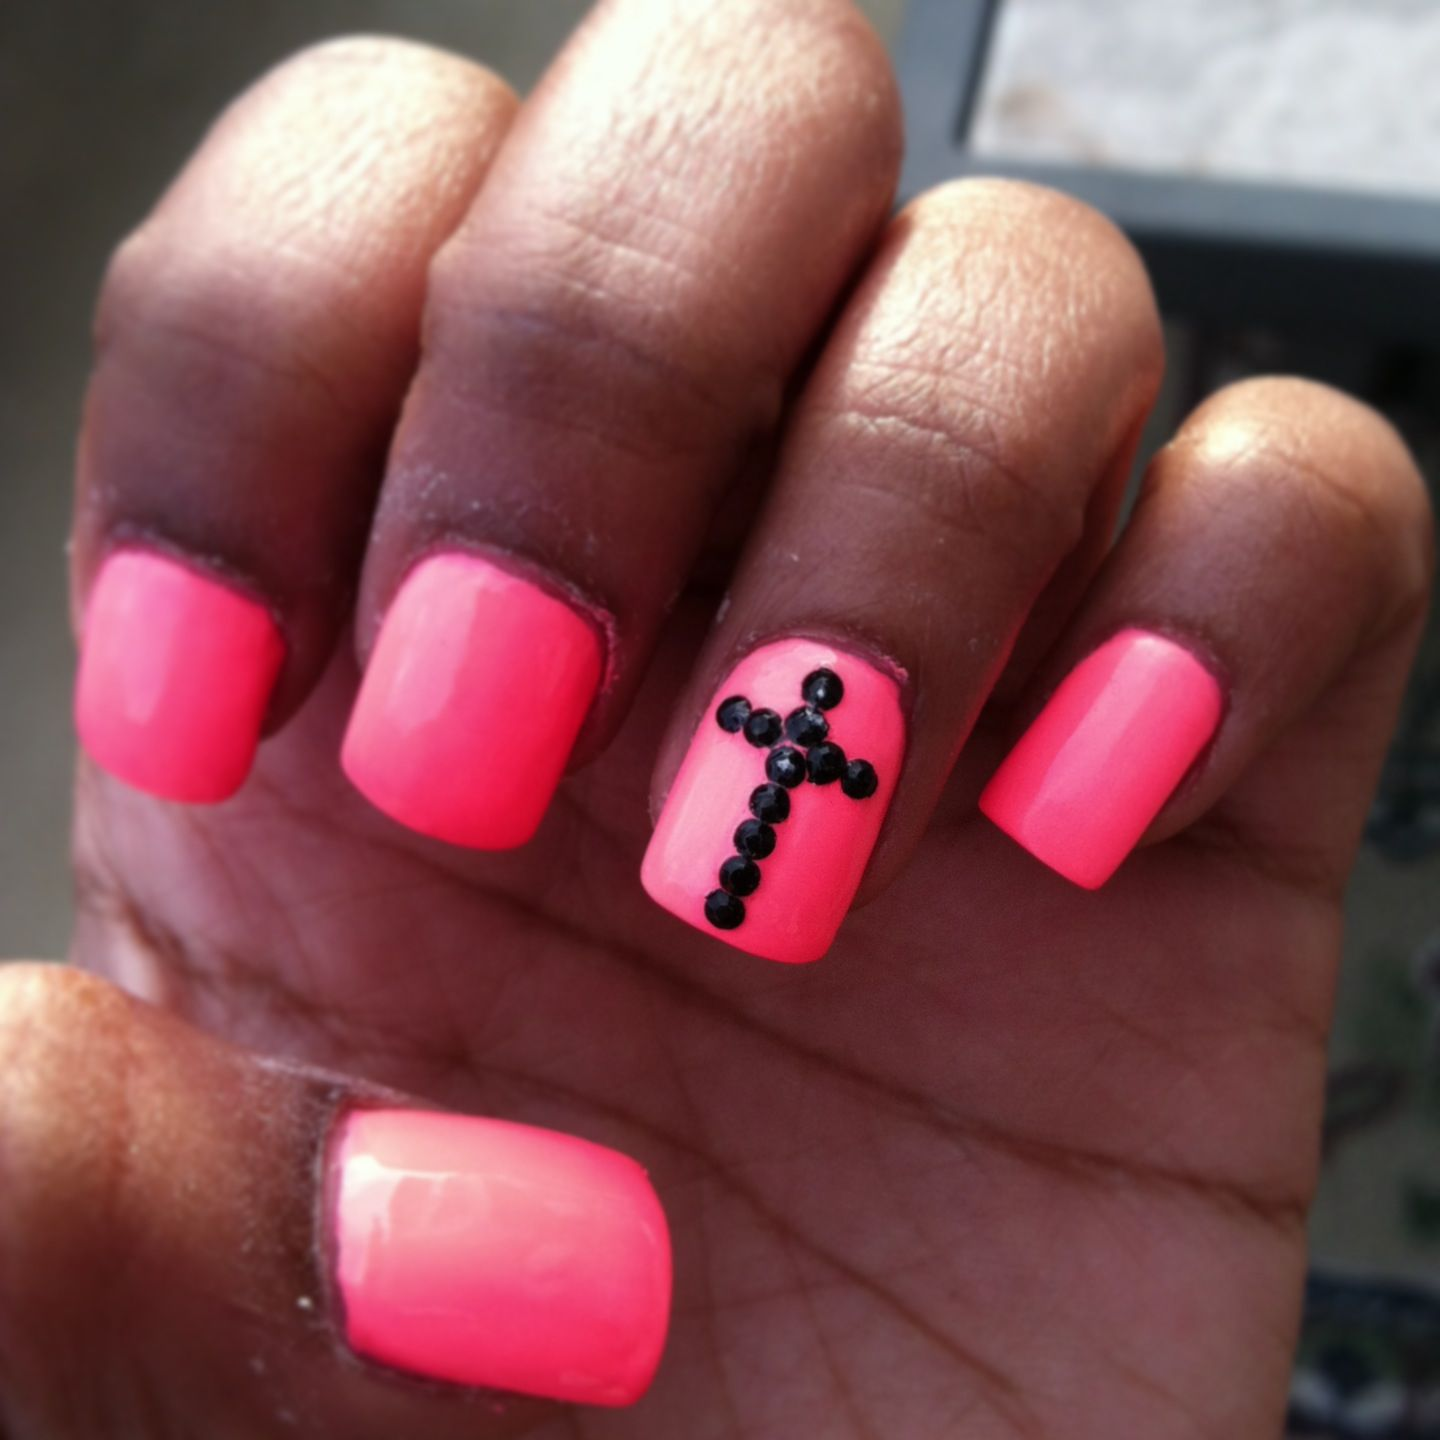 New hot pink and black rhinestoned cross nails | Nail designs ...